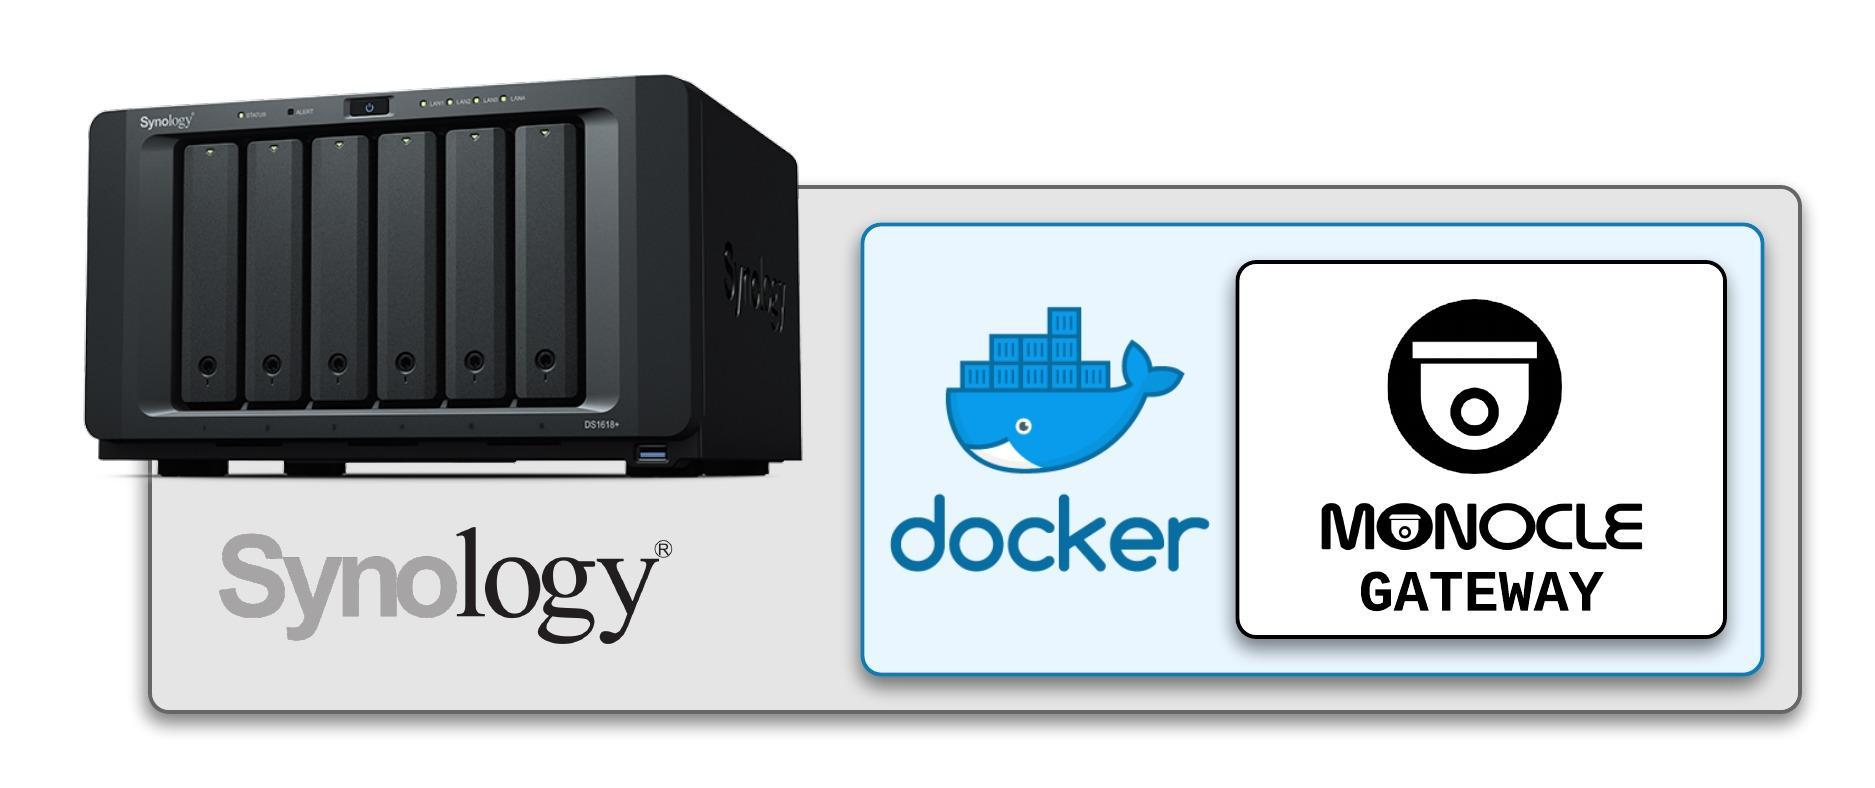 How To Install Monocle Gateway on a Synology NAS as a Docker Container